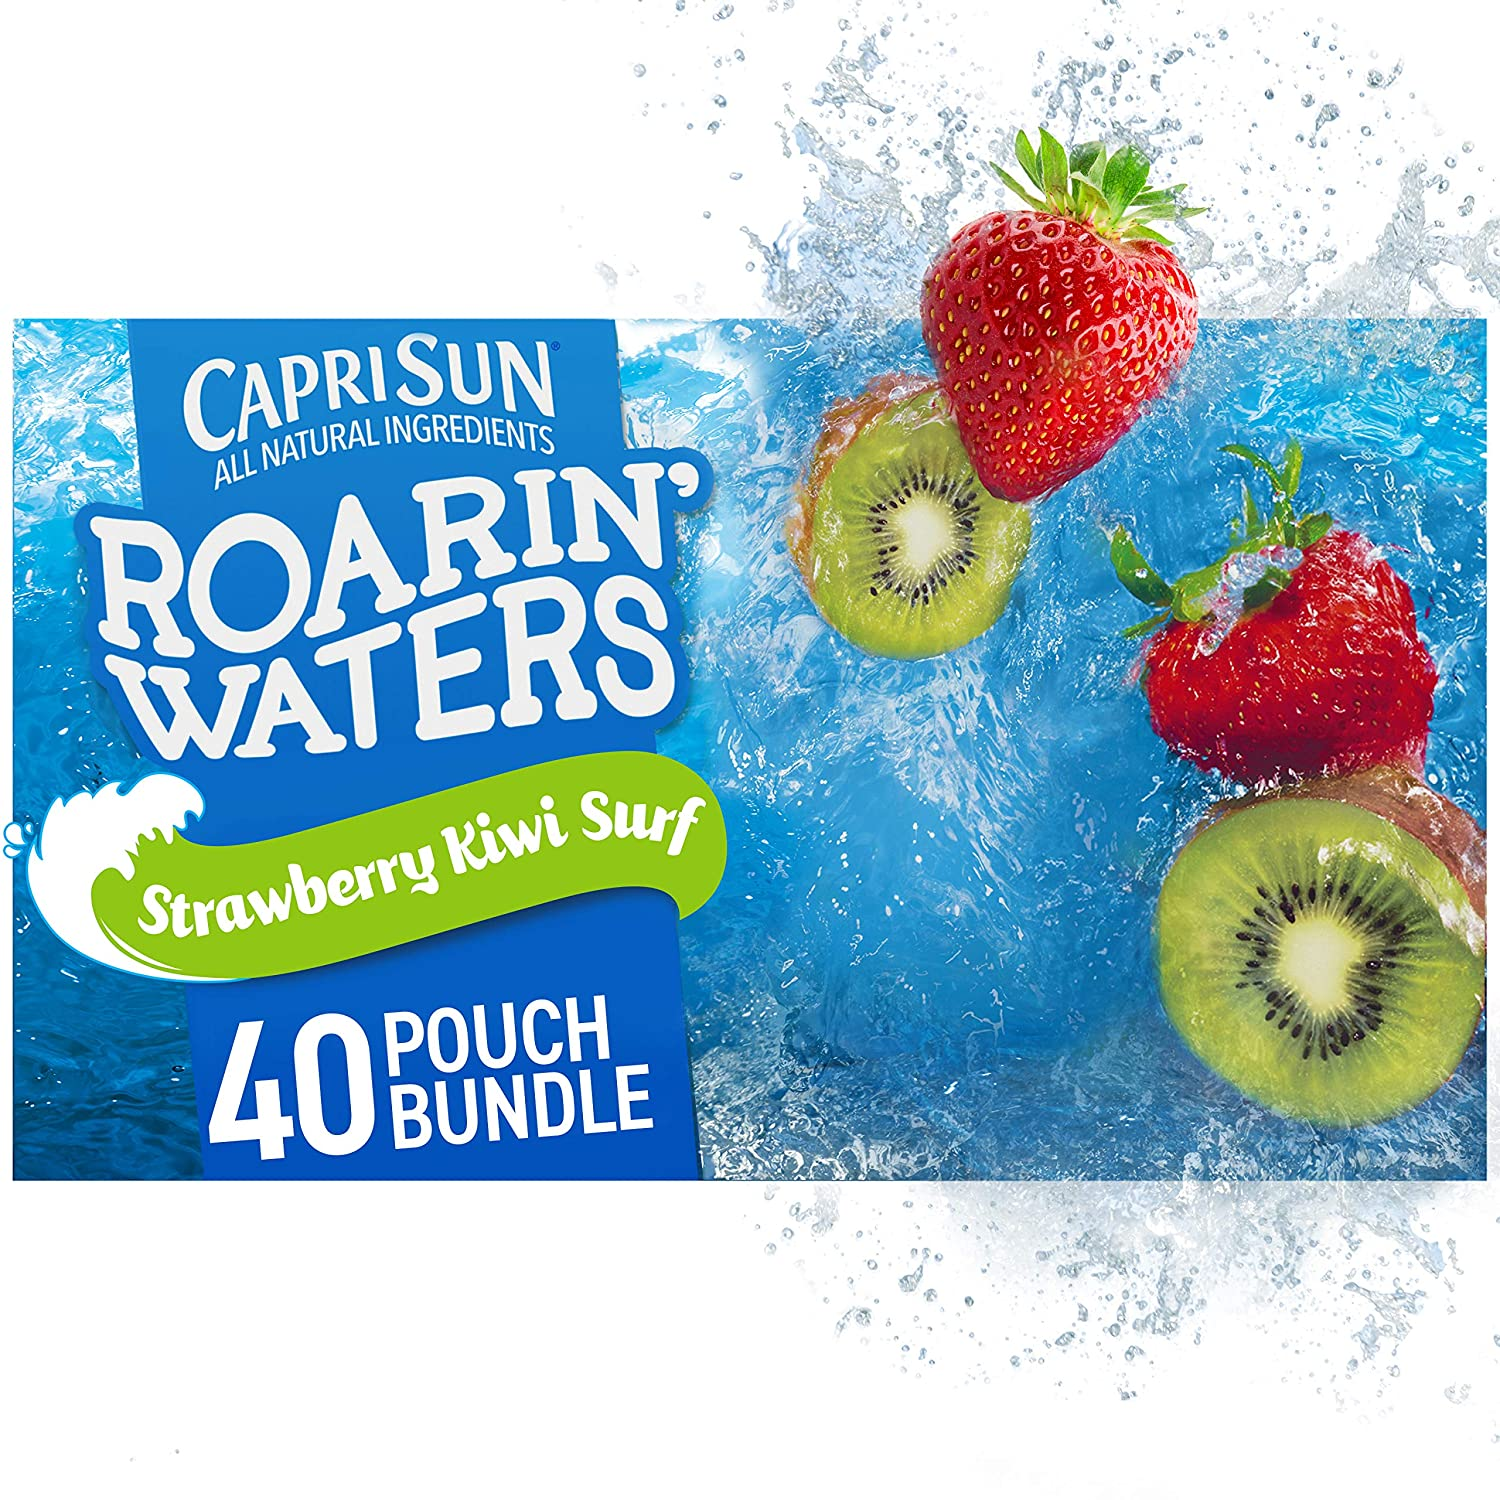 Capri Sun Roarin' Waters Strawberry Kiwi Surf Ready-to-Drink Juice (40 Pouches, 4 Boxes of 10)